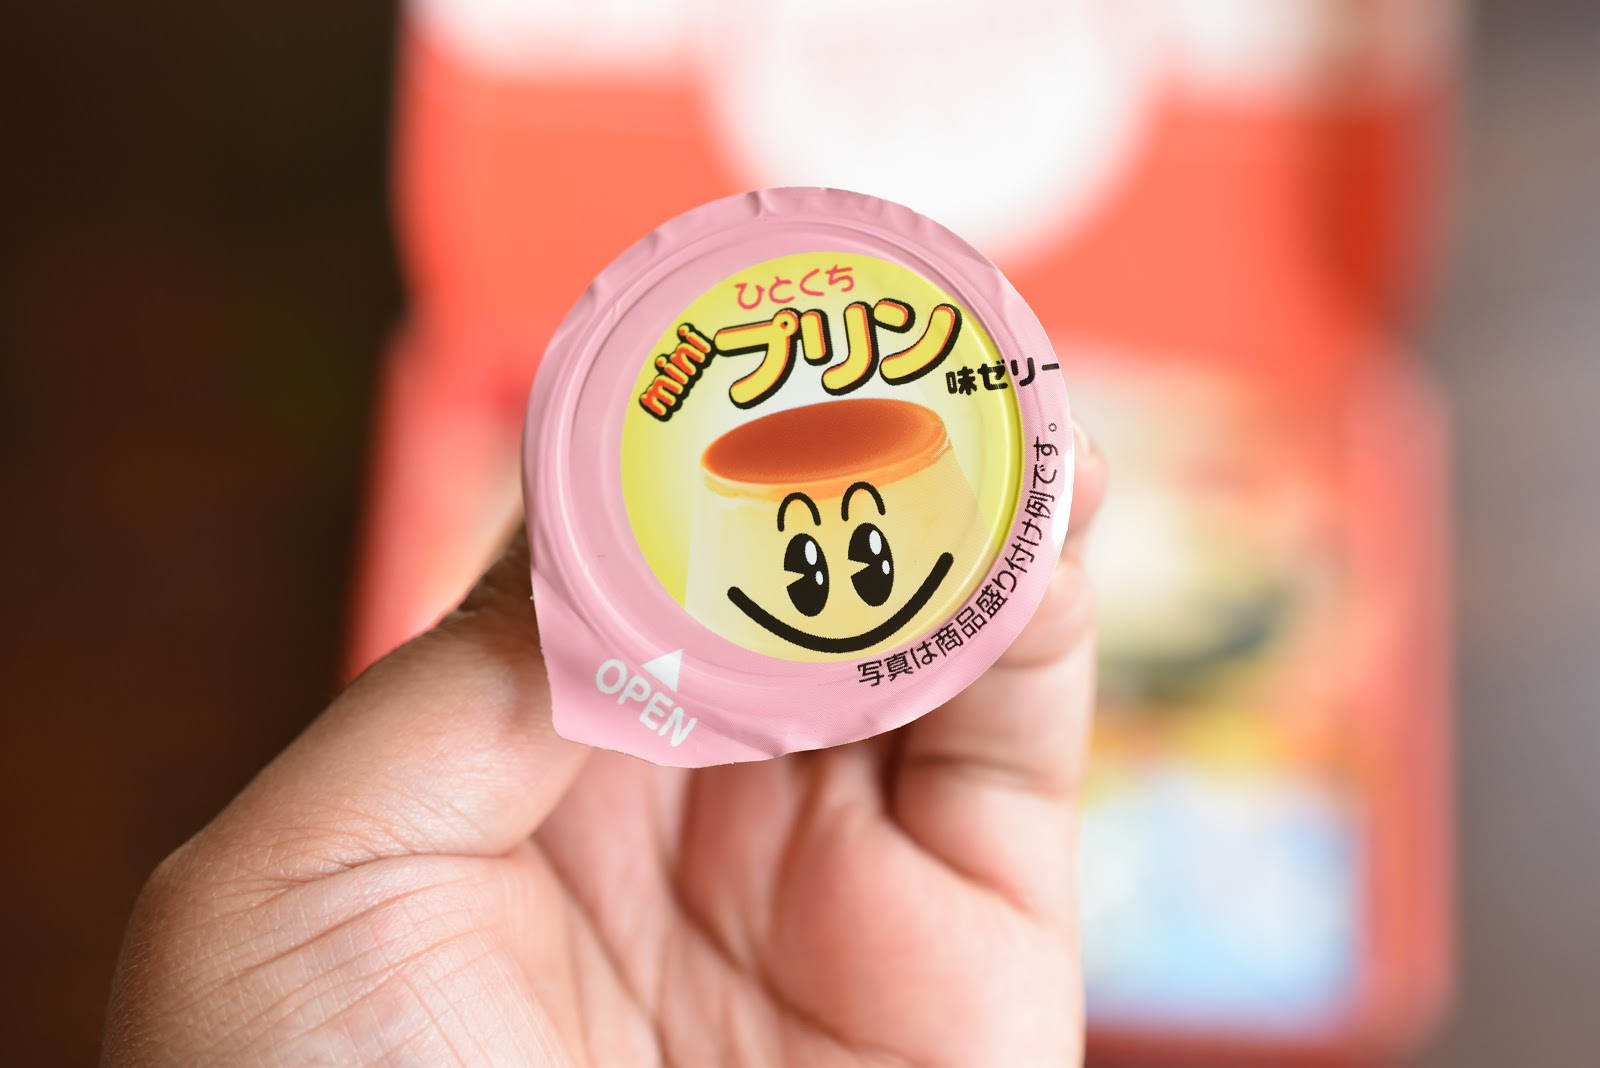 Pudding Flavored Jelly